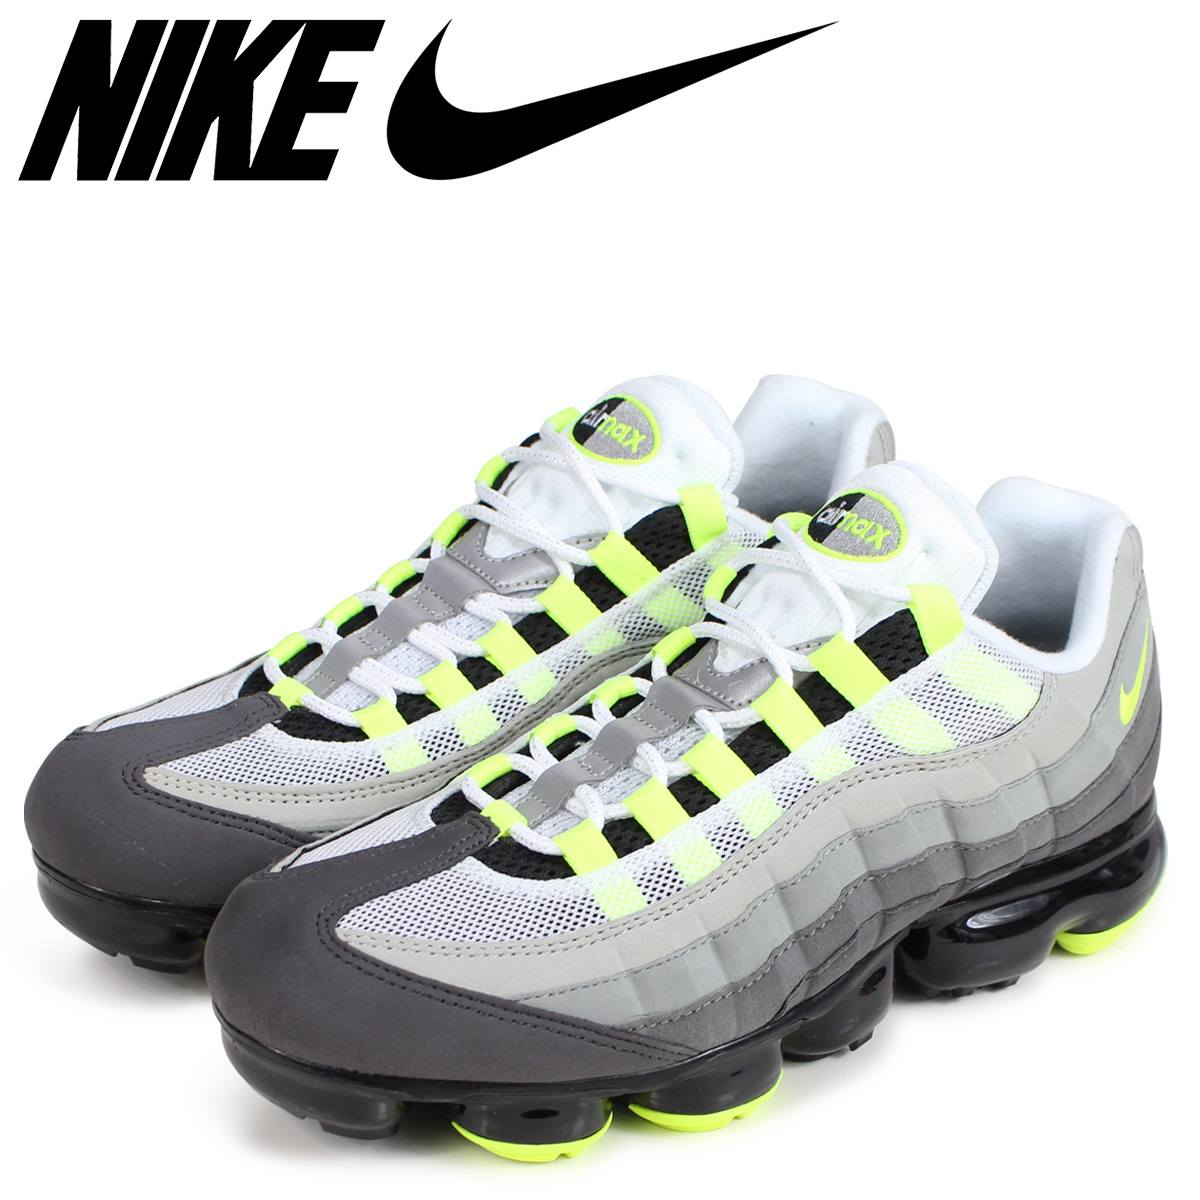 save off d89bf 2396c NIKE Nike air vapor max 95 sneakers men AIR VAPORMAX 95 NEON AJ7292-001  neon yellow [the 9/6 additional arrival]